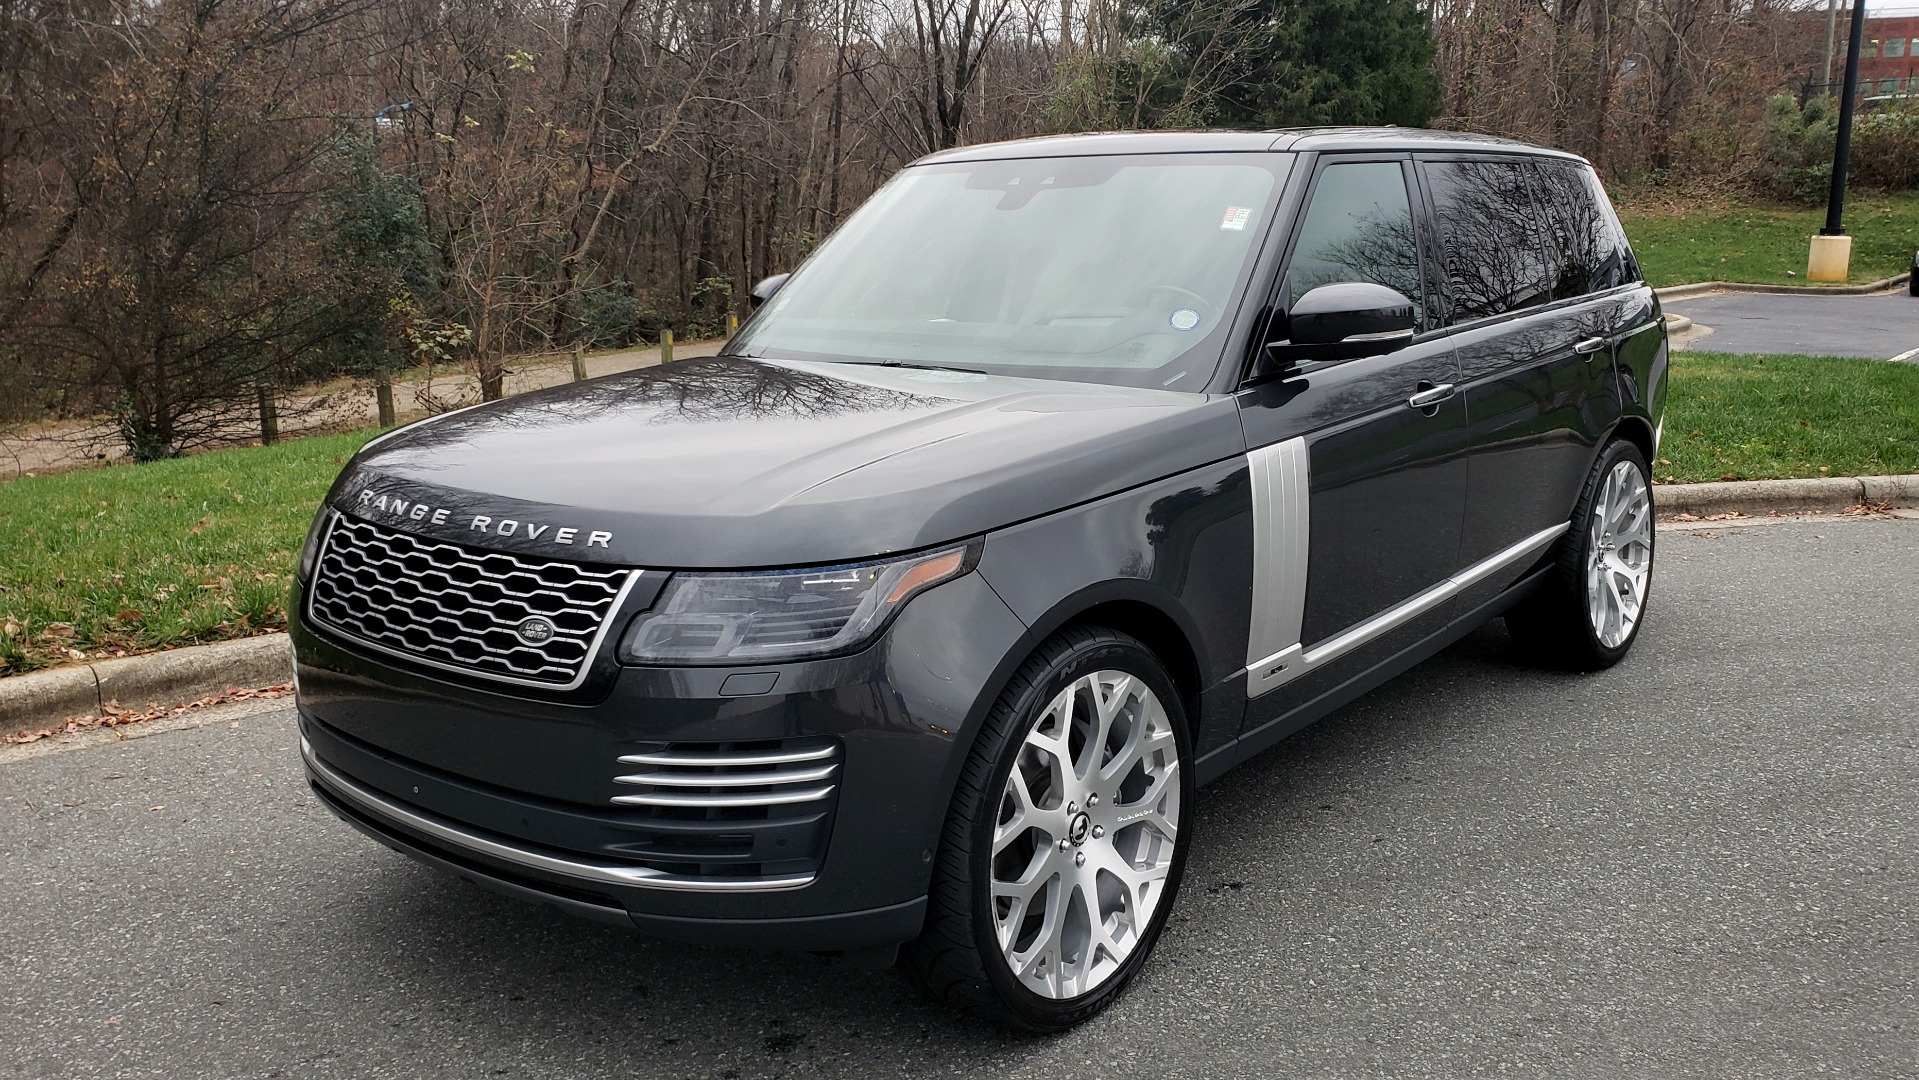 Used 2018 Land Rover RANGE ROVER AUTOBIOGRAPHY SC V8 / LONG / NAV / PANOROOF / ENT SYS / REARVIEW for sale $117,999 at Formula Imports in Charlotte NC 28227 2